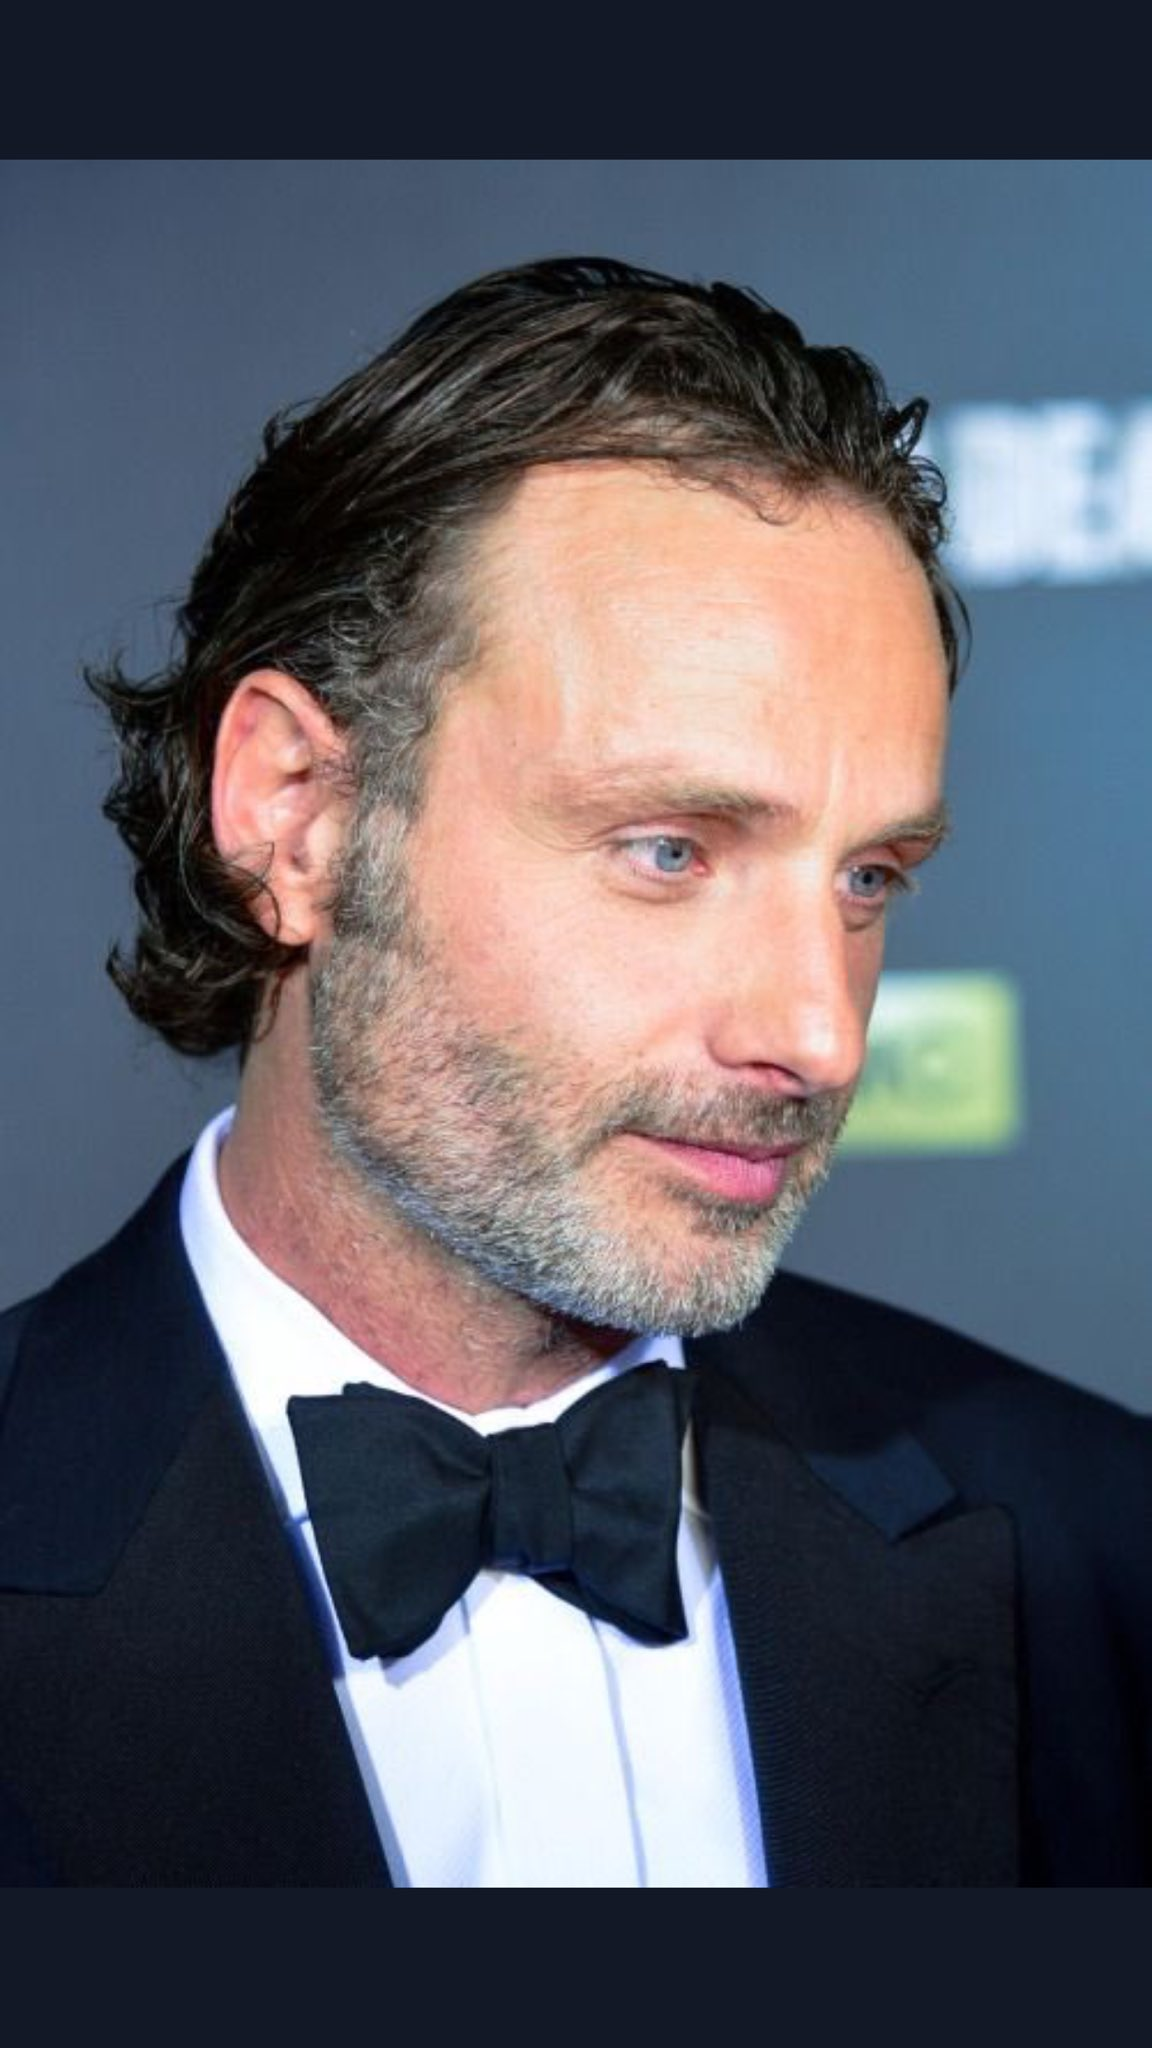 HAPPY BIRTHDAY to the handsome, gorgeous and talented Andrew Lincoln!!